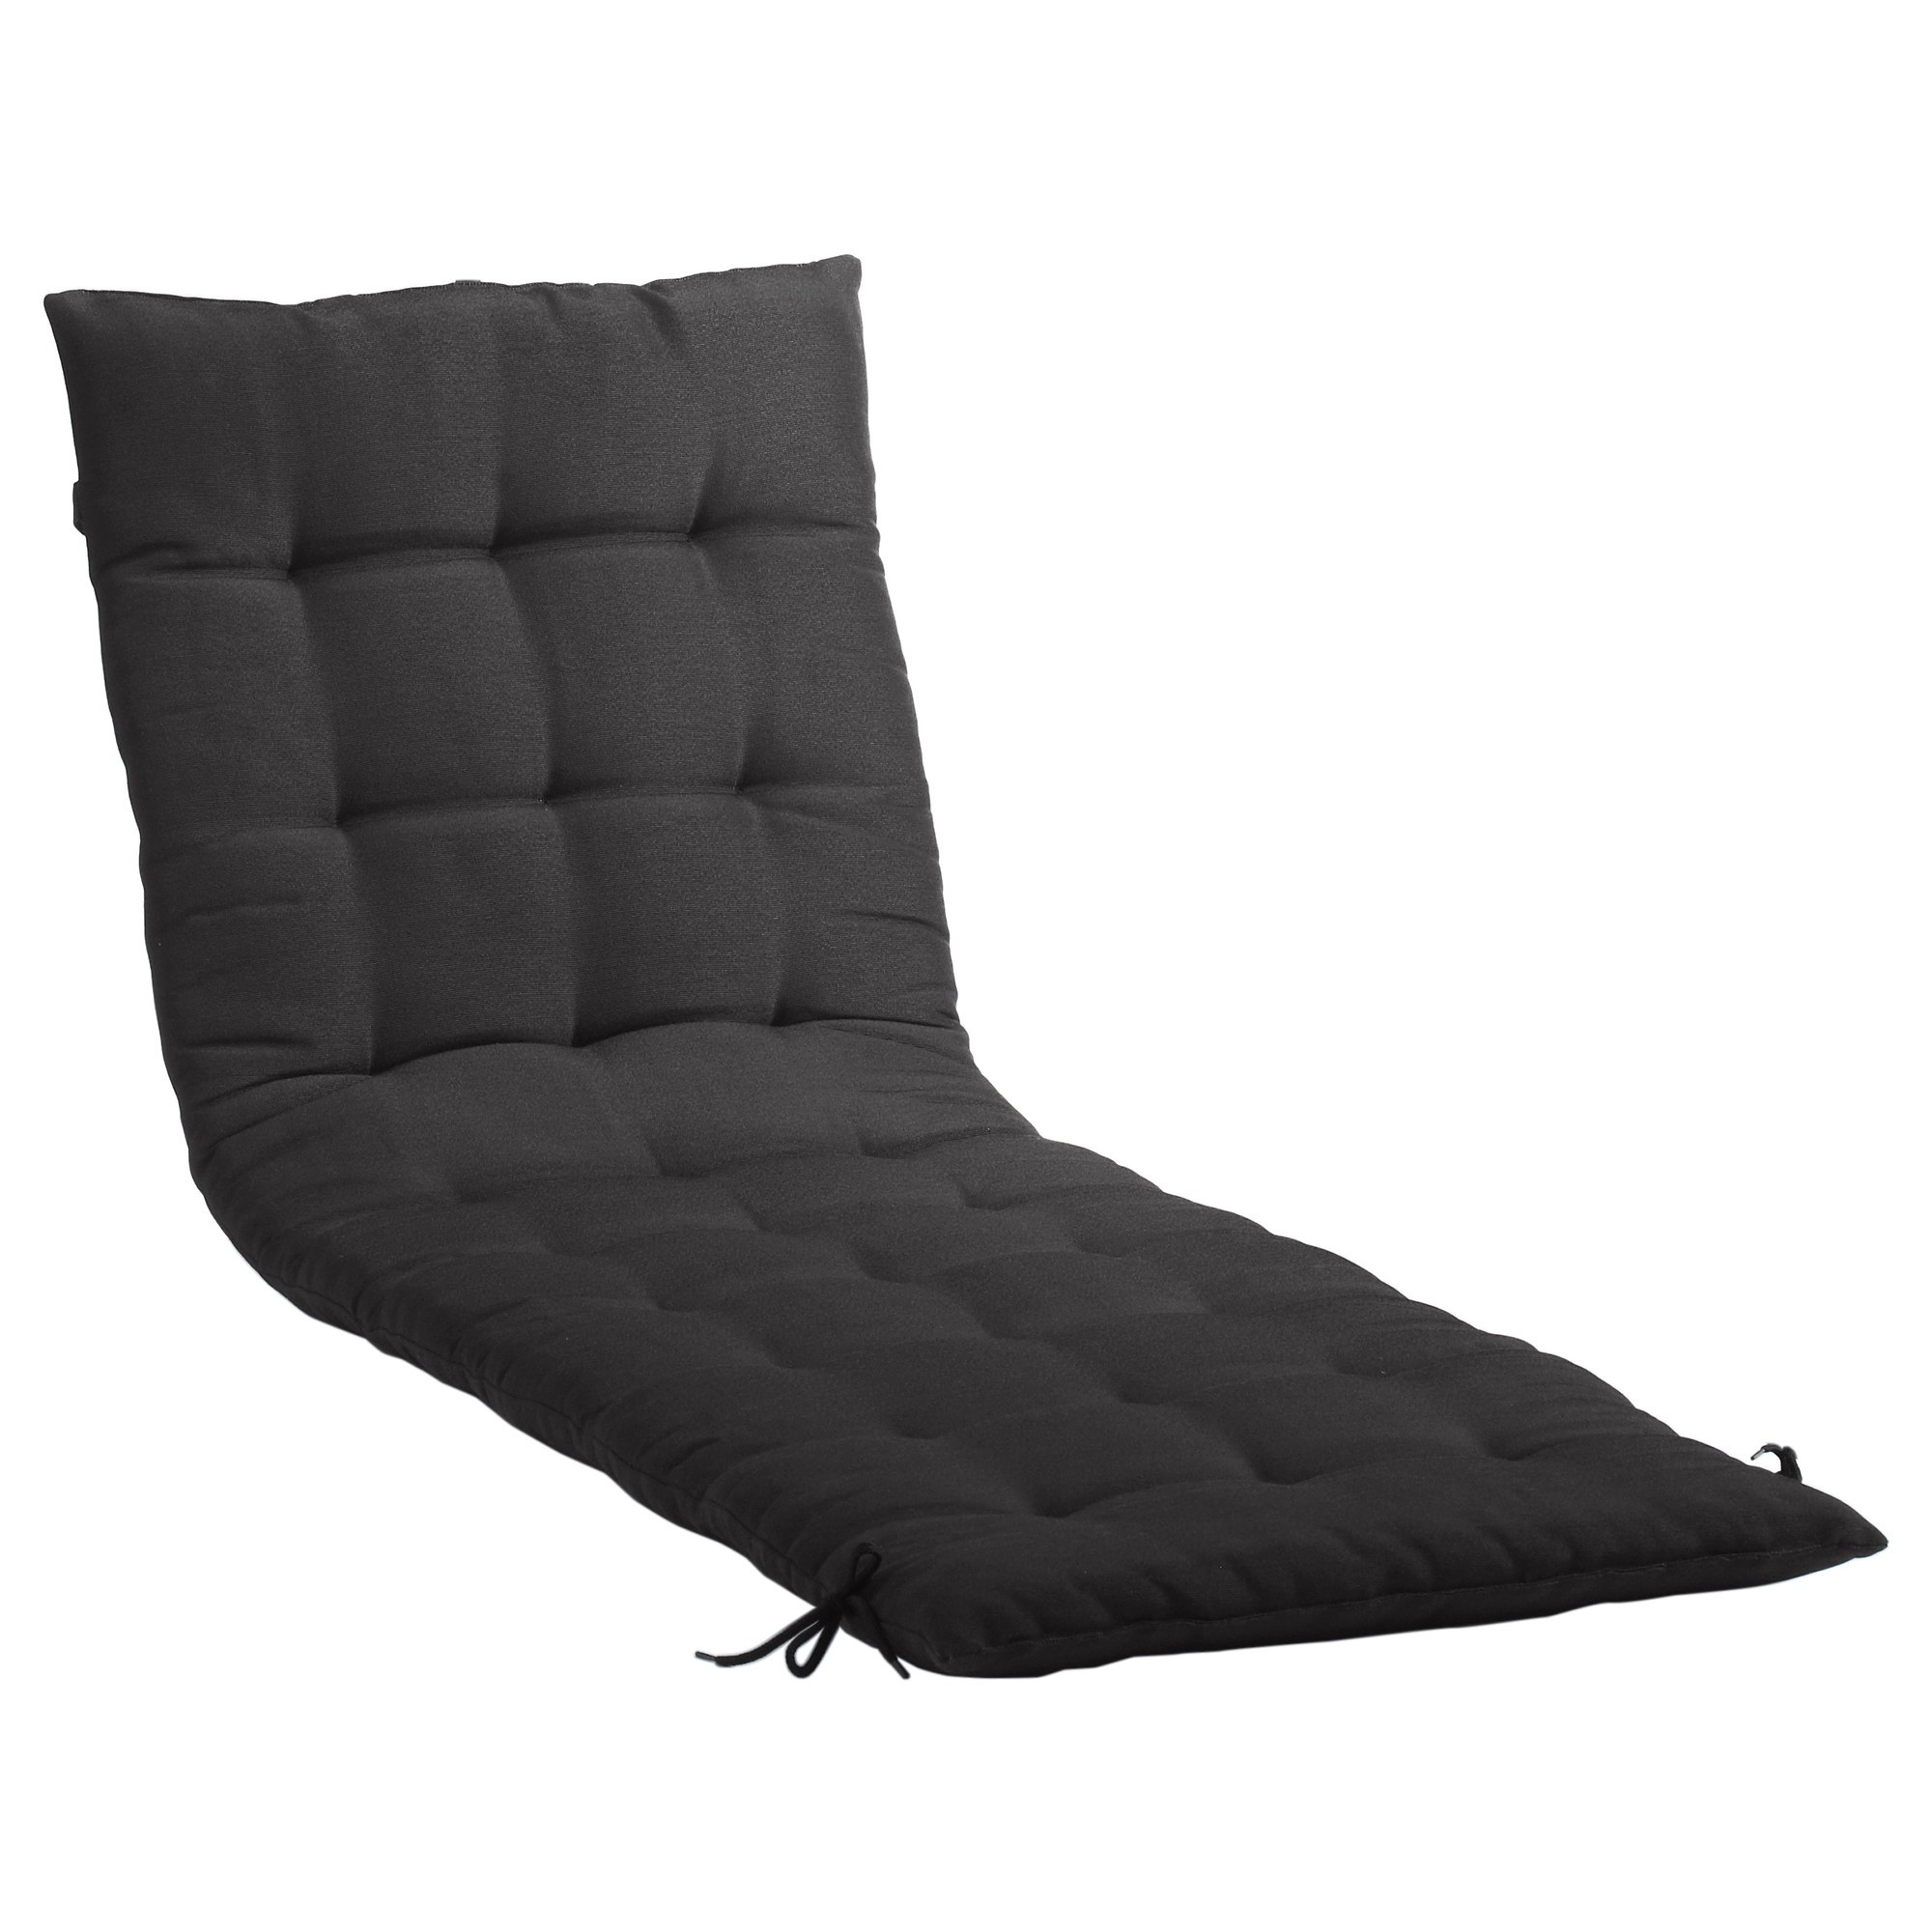 coussin pour chaise exterieur ikea chaise id es de. Black Bedroom Furniture Sets. Home Design Ideas